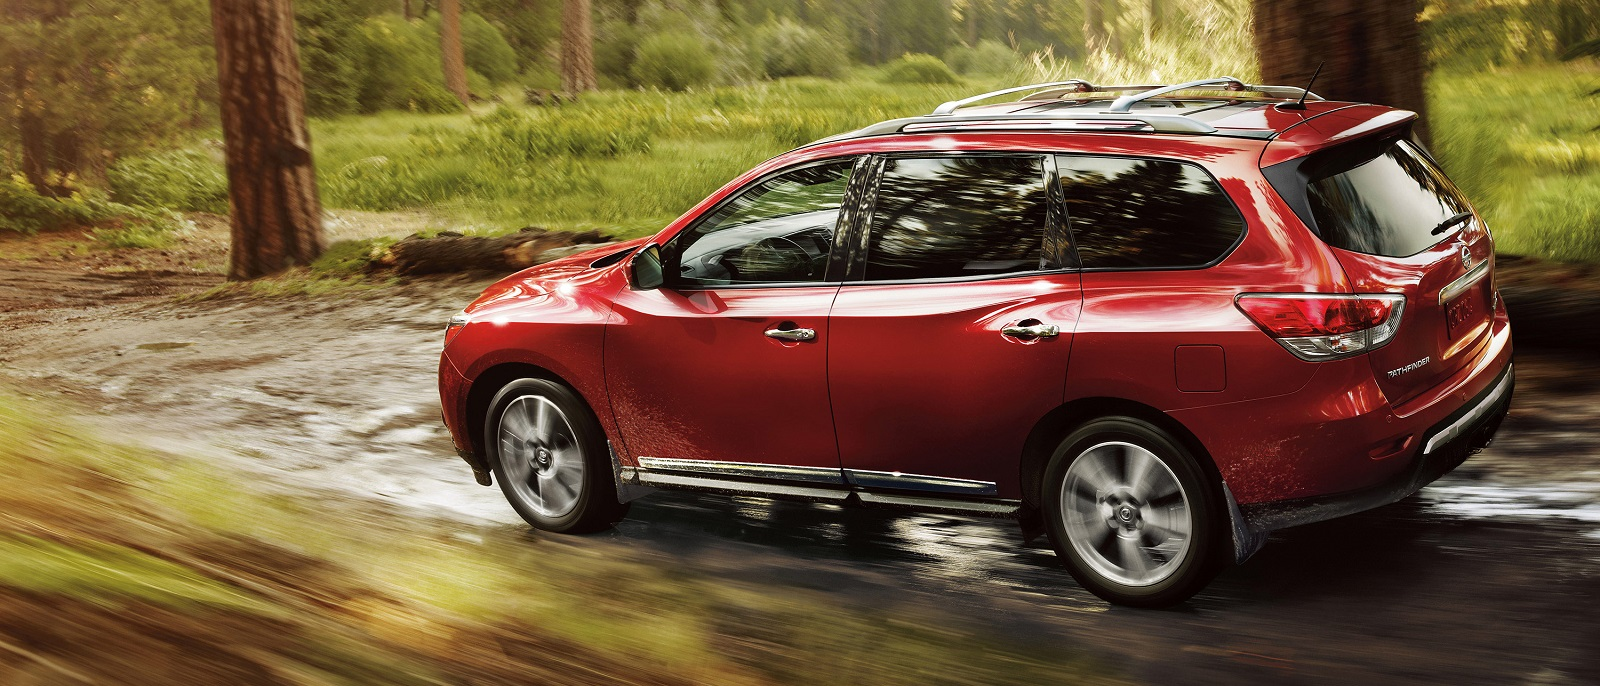 2016 Nissan Pathfinder Red